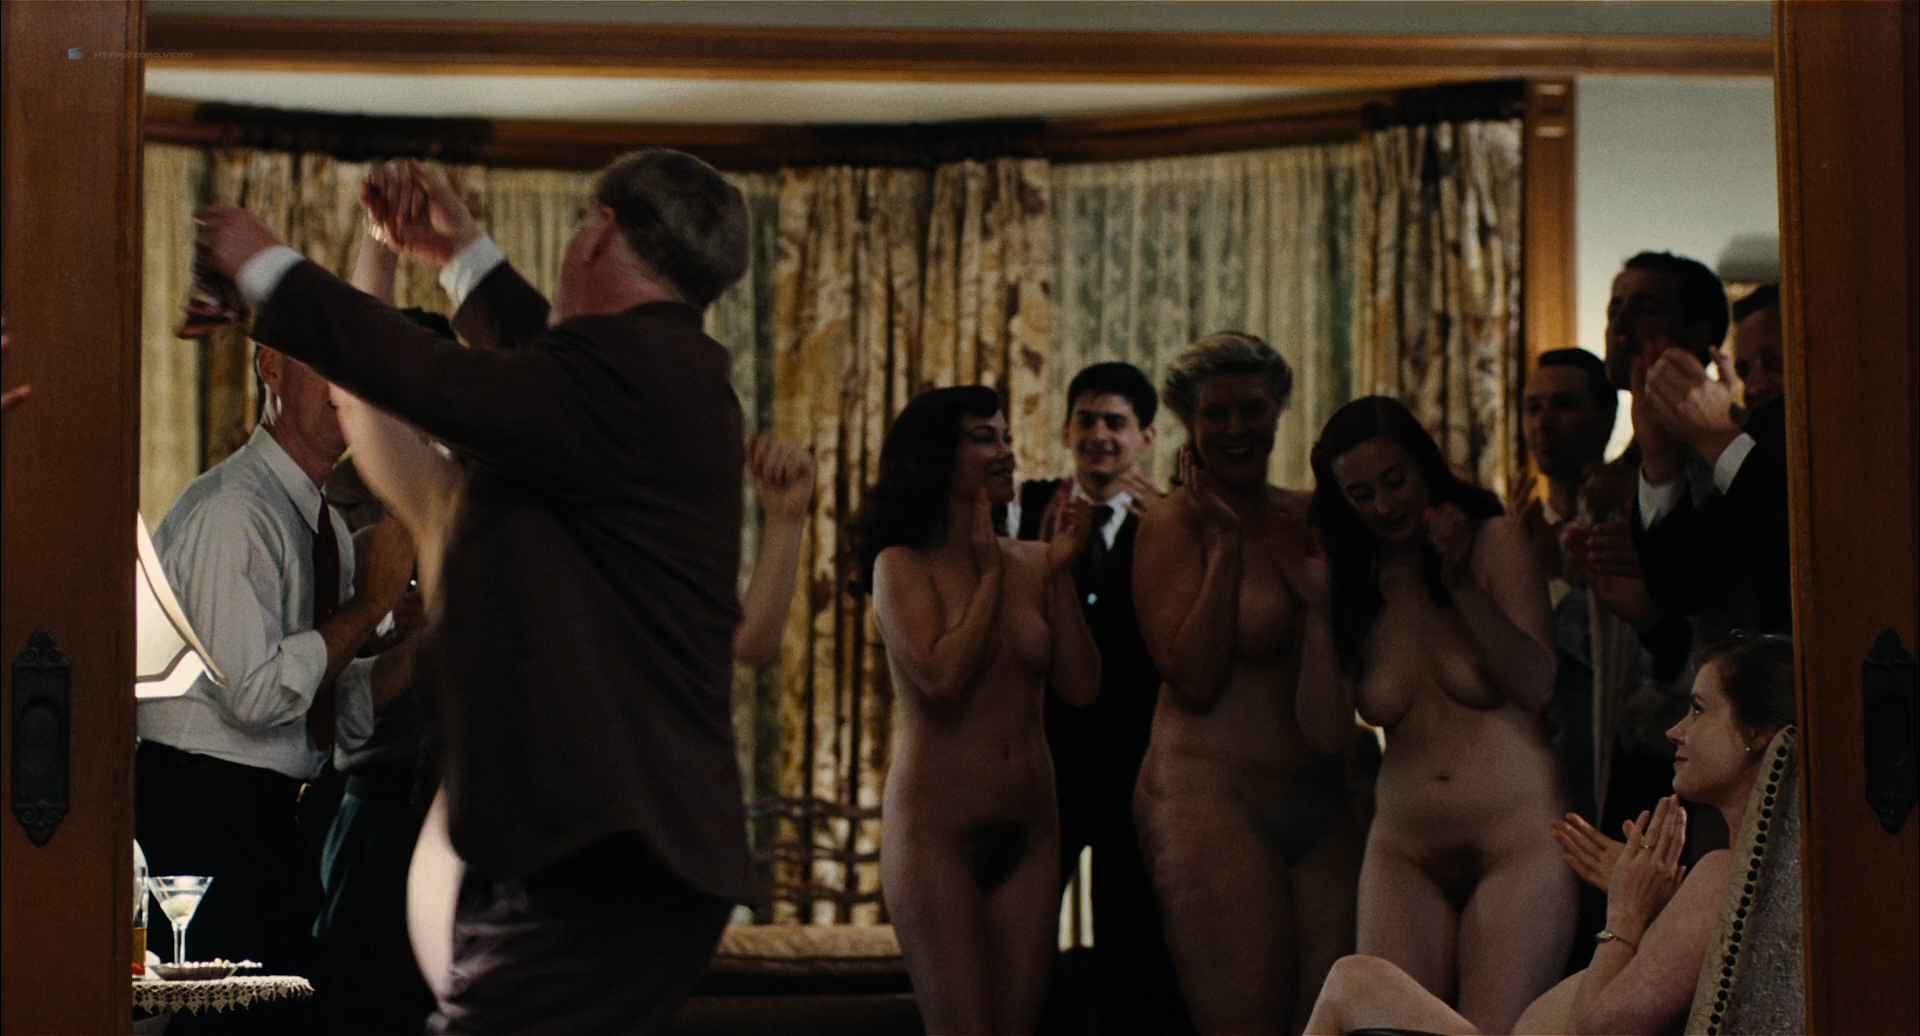 Amy Ferguson nude topless, Liz Clare, Katie Boland nude dancing Amy Adams nude covered and Jennifer Neala Page nude sex - The Master (2012) HD 1080p BluRay (5)